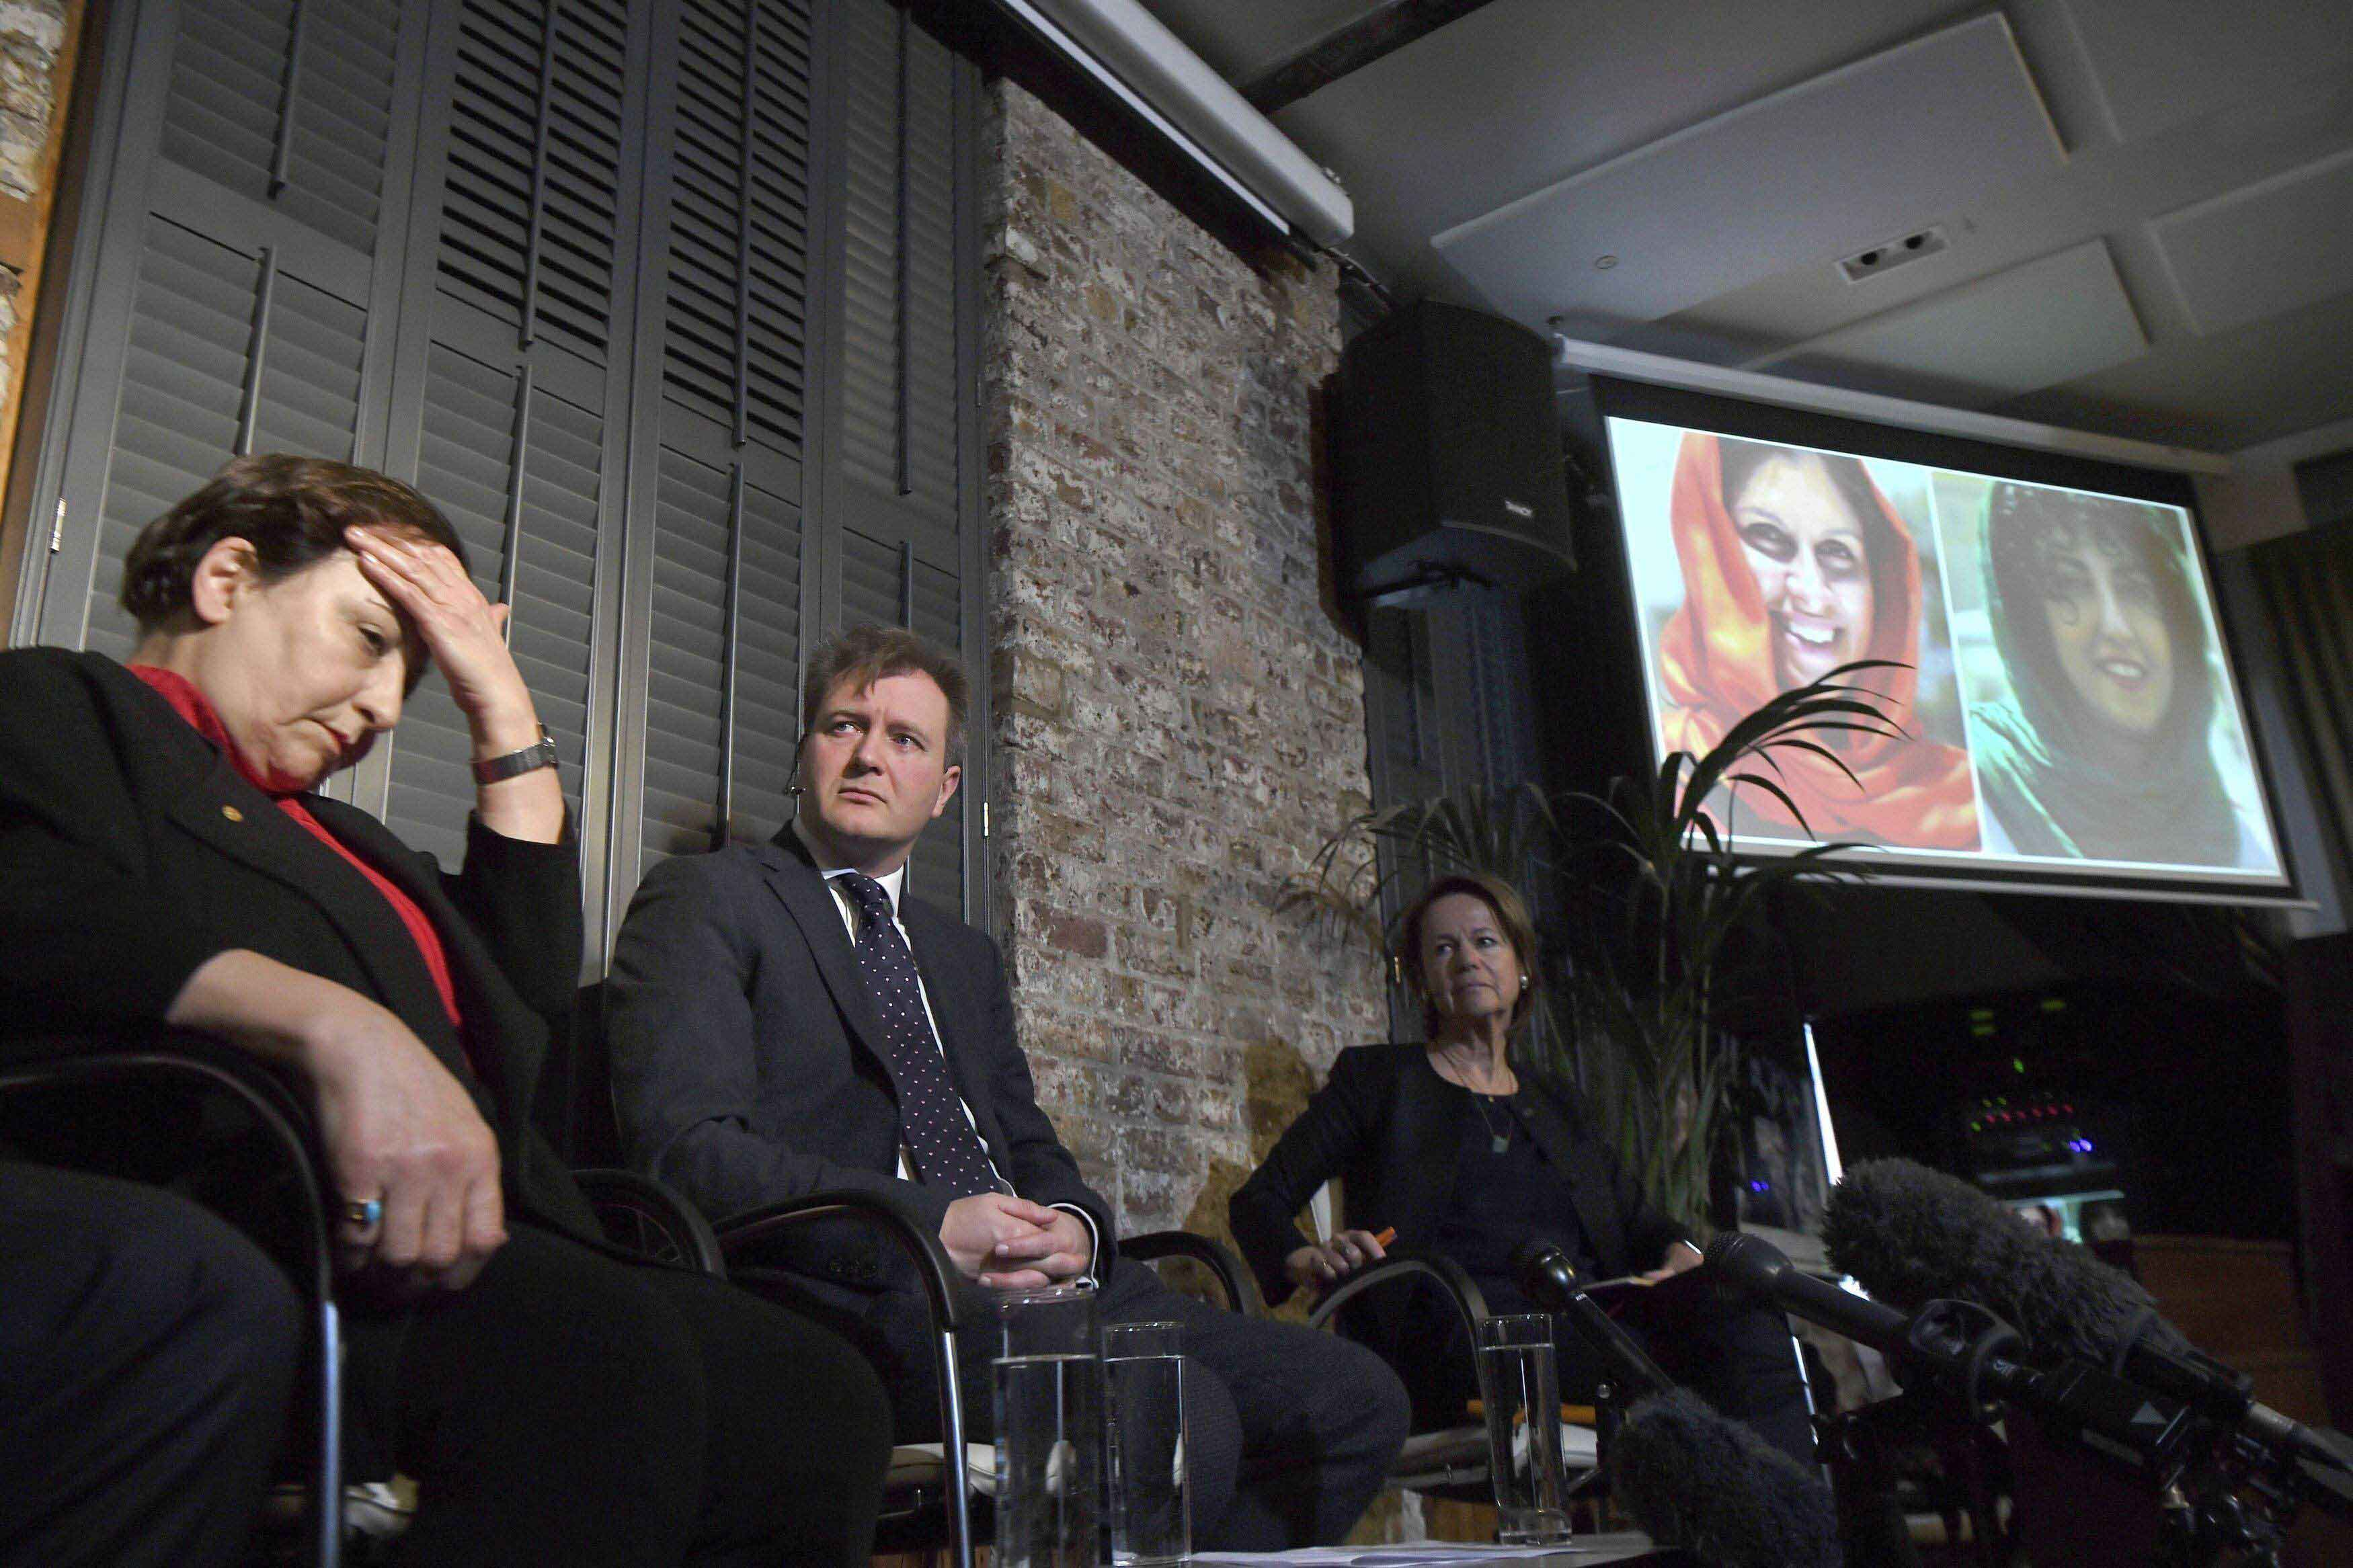 Iranian lawyer and former judge, Shirin Ebadi, and human rights activist and founder of Defenders of Human Rights Centre in Iran sits with, Richard Ratcliffe, the husband of jailed British mother Nazanin Zaghari-Ratcliffe